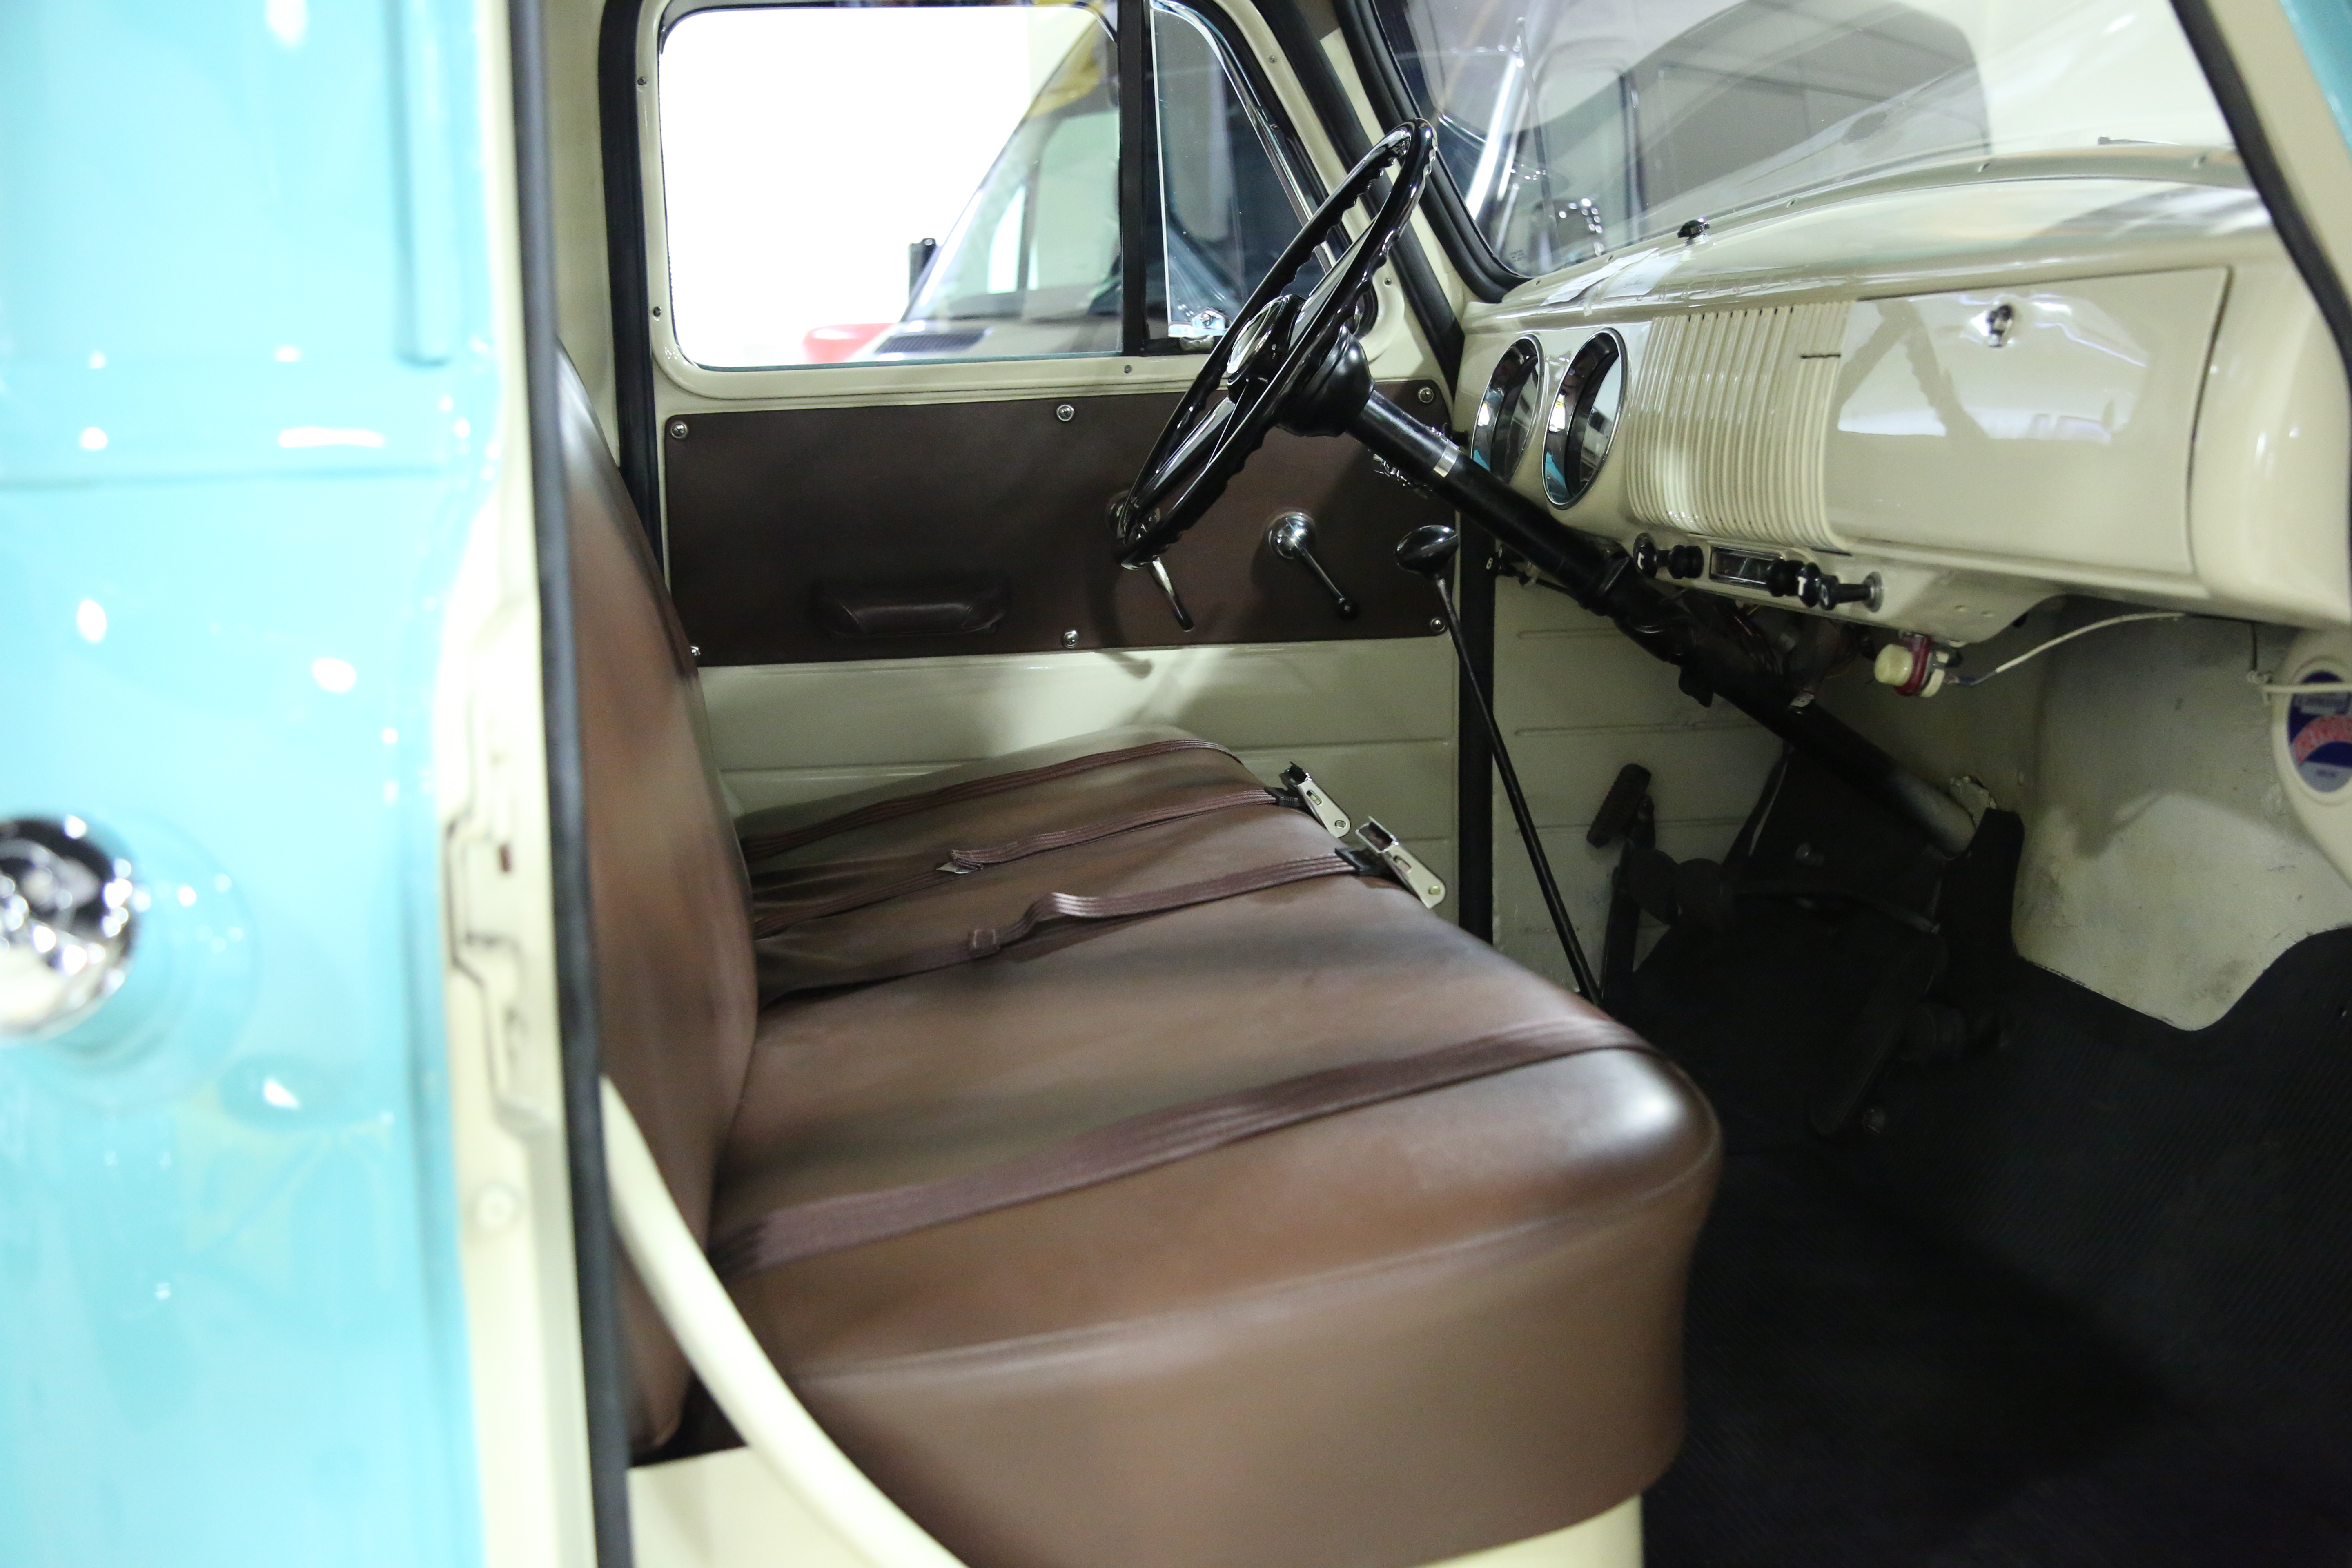 1954 Chevrolet 3600 Fusion Luxury Motors Chevy Truck Bed